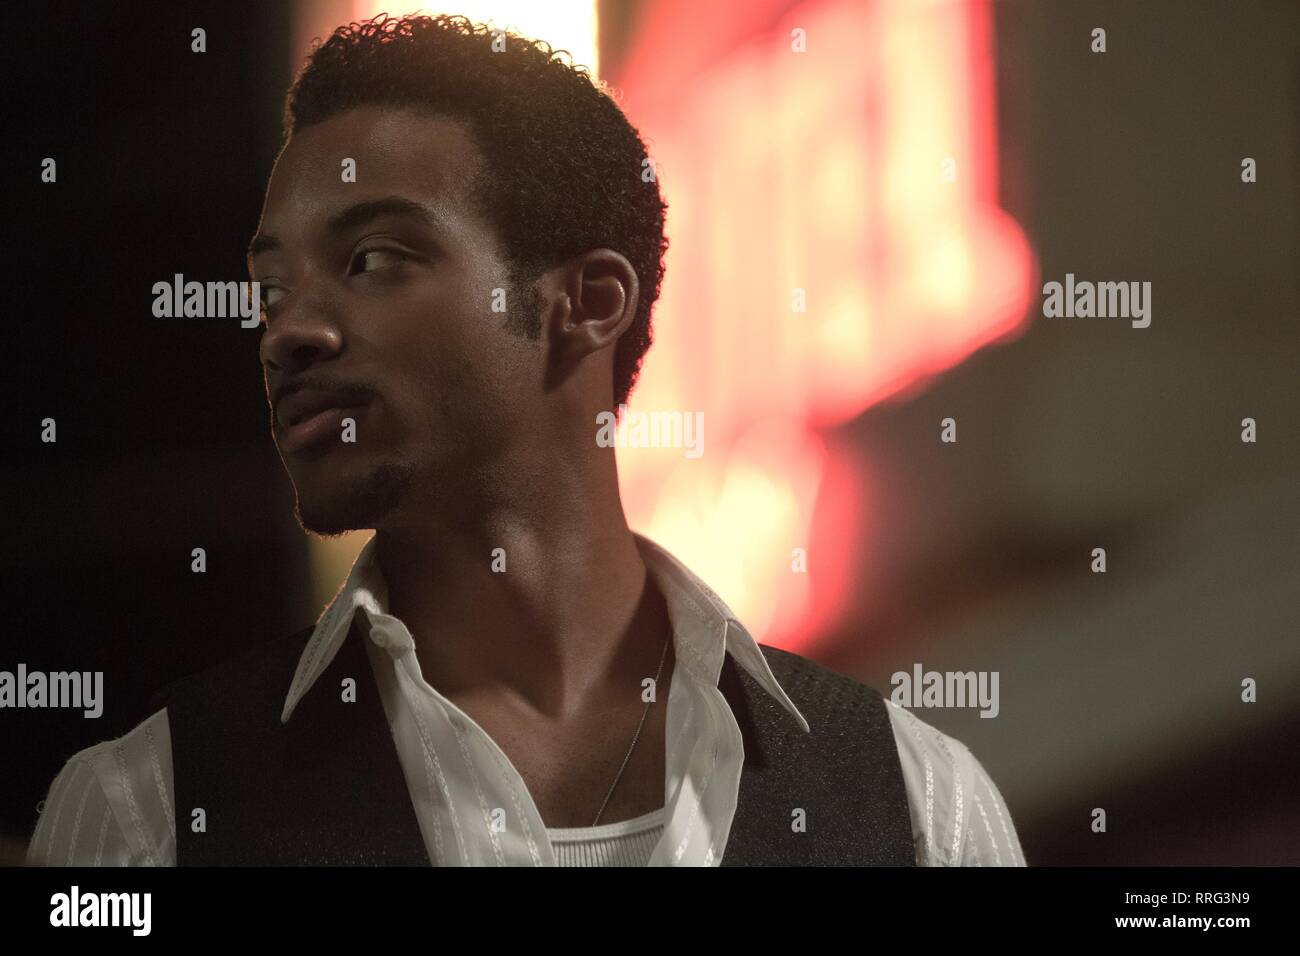 DETROIT, ALGEE SMITH, 2017 - Stock Image